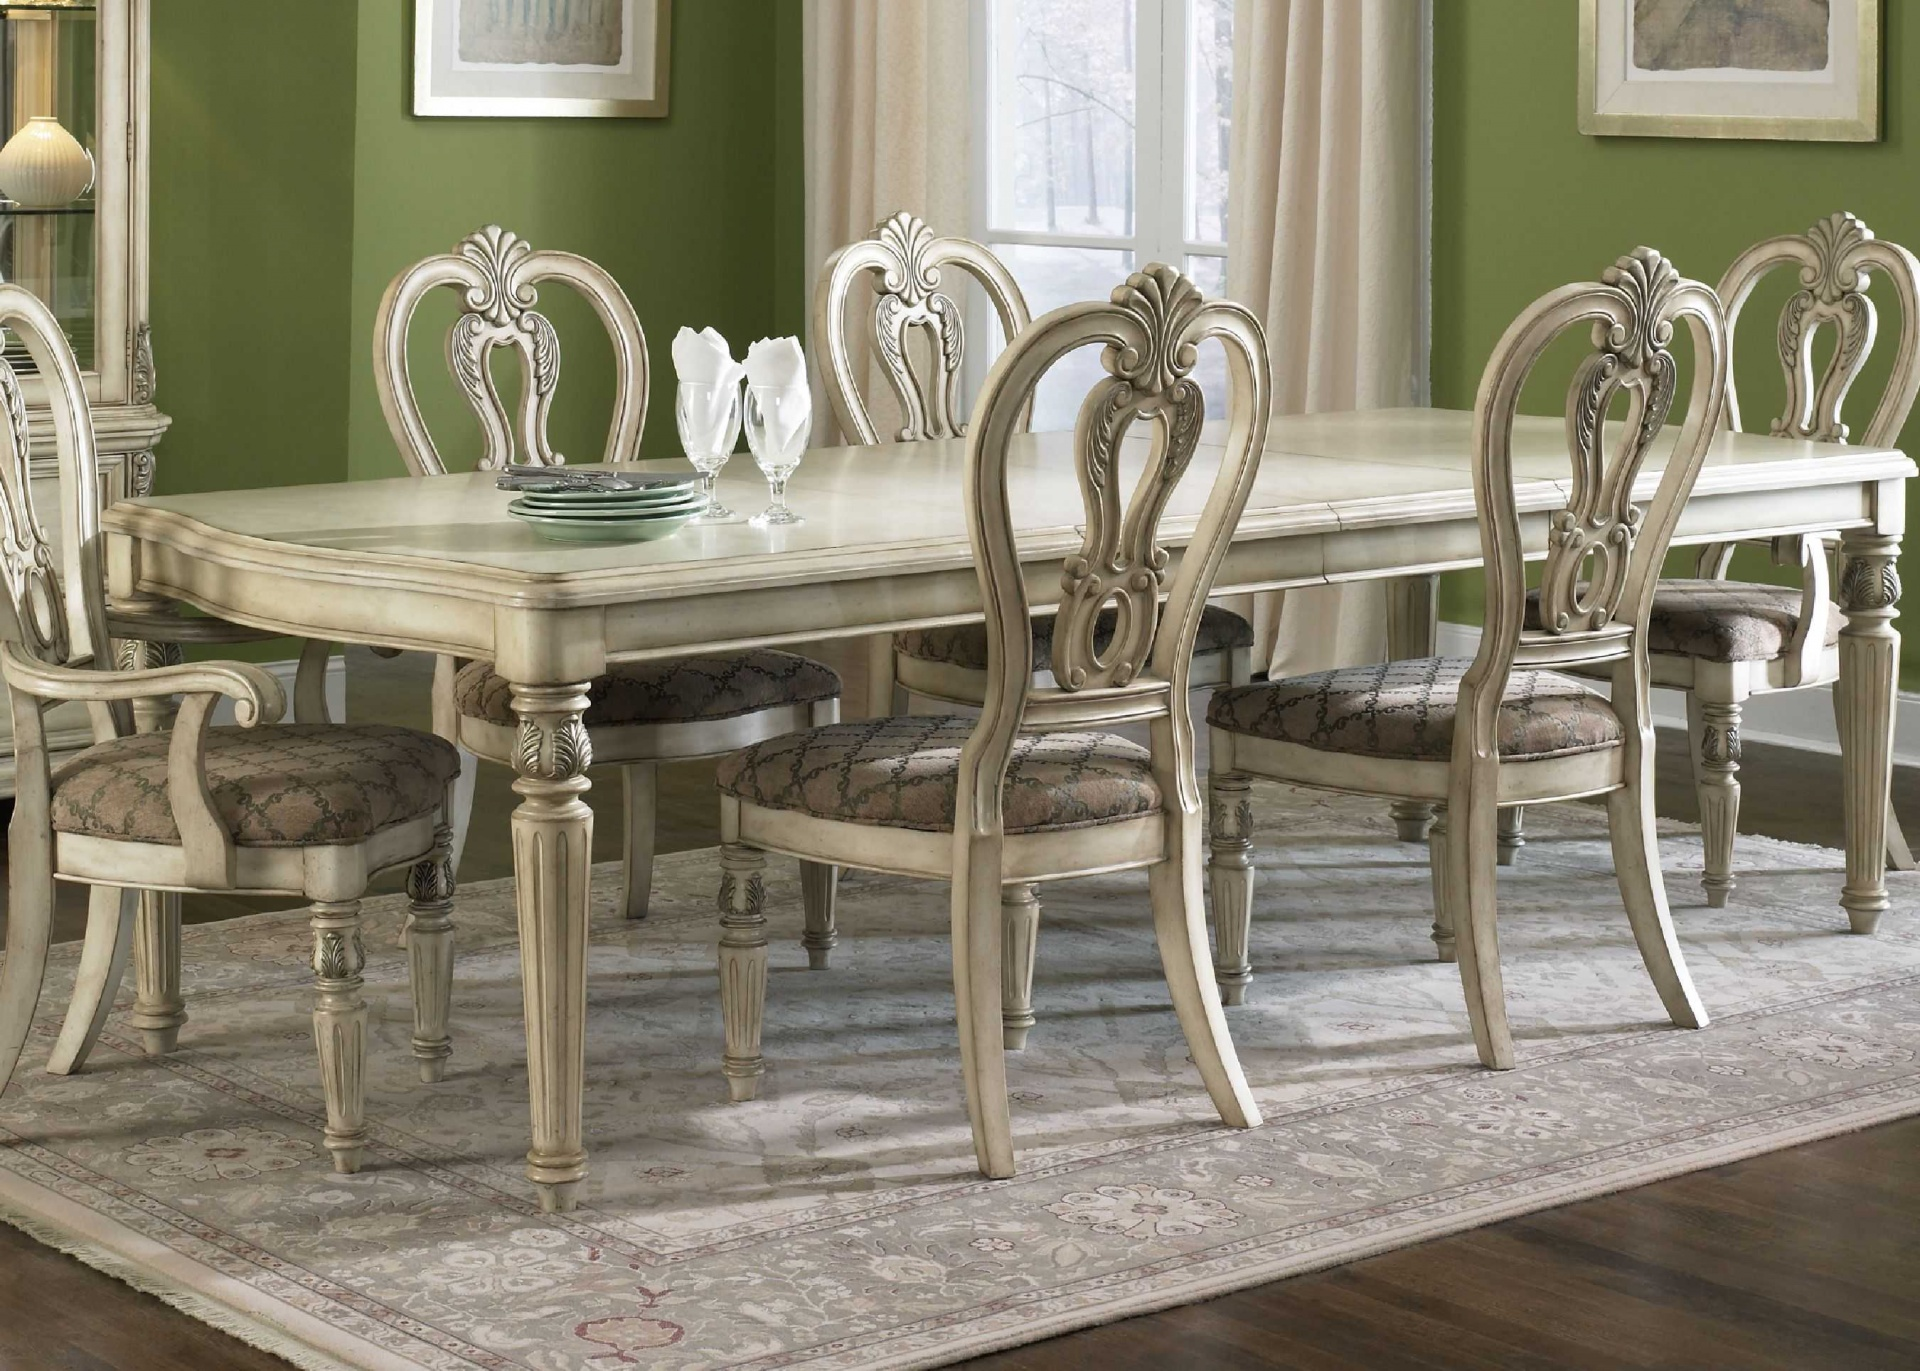 Buy Ivory Dining Tables from Bed Bath amp Beyond